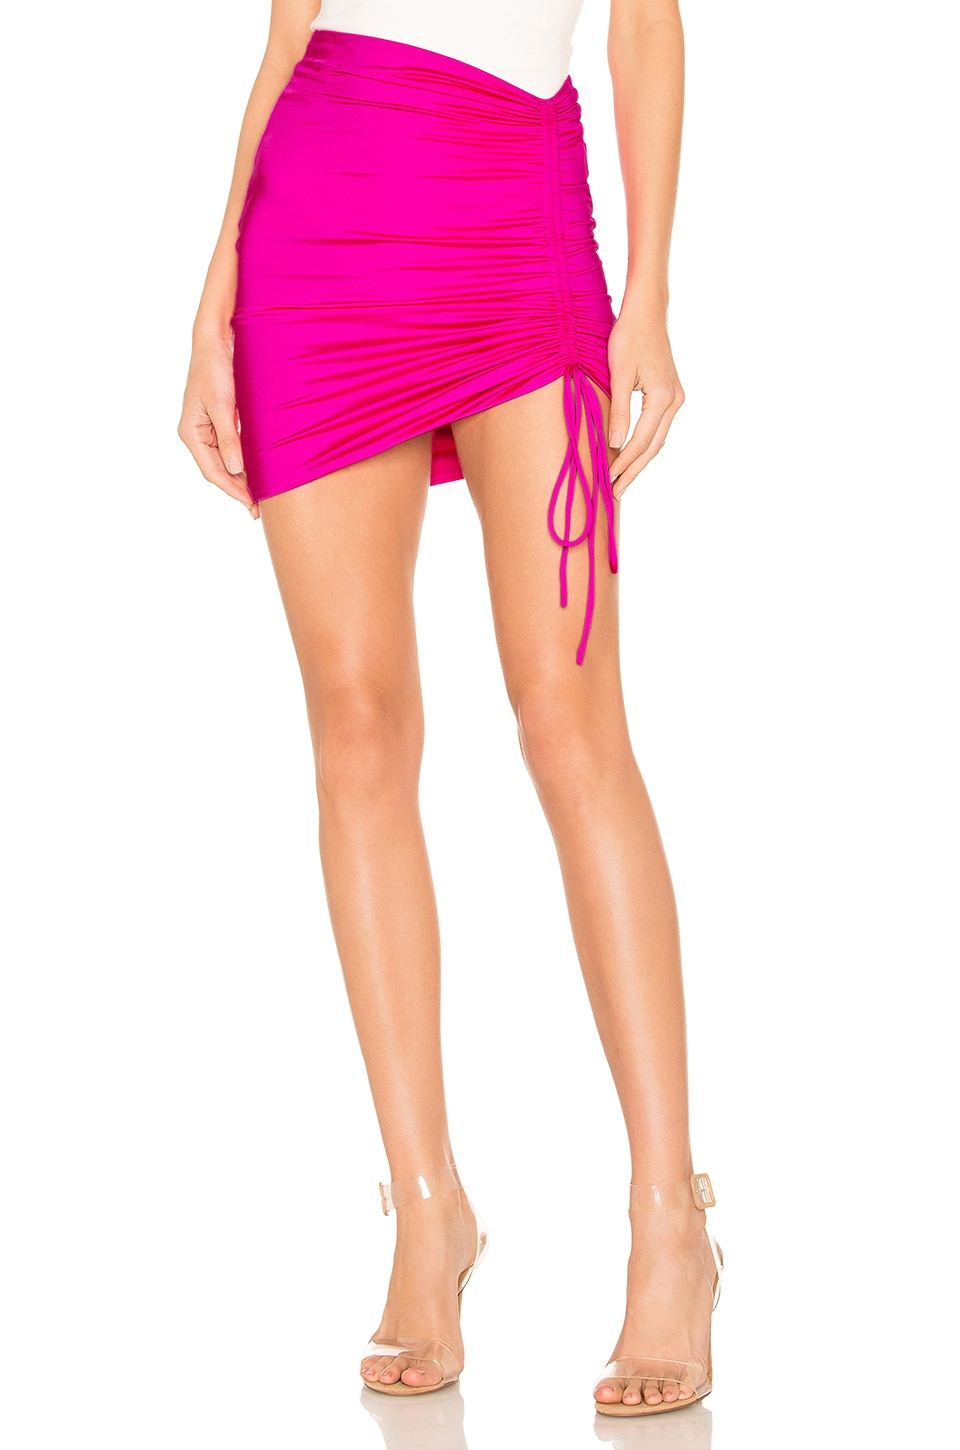 h:ours Nolene Skirt in Pink Punch